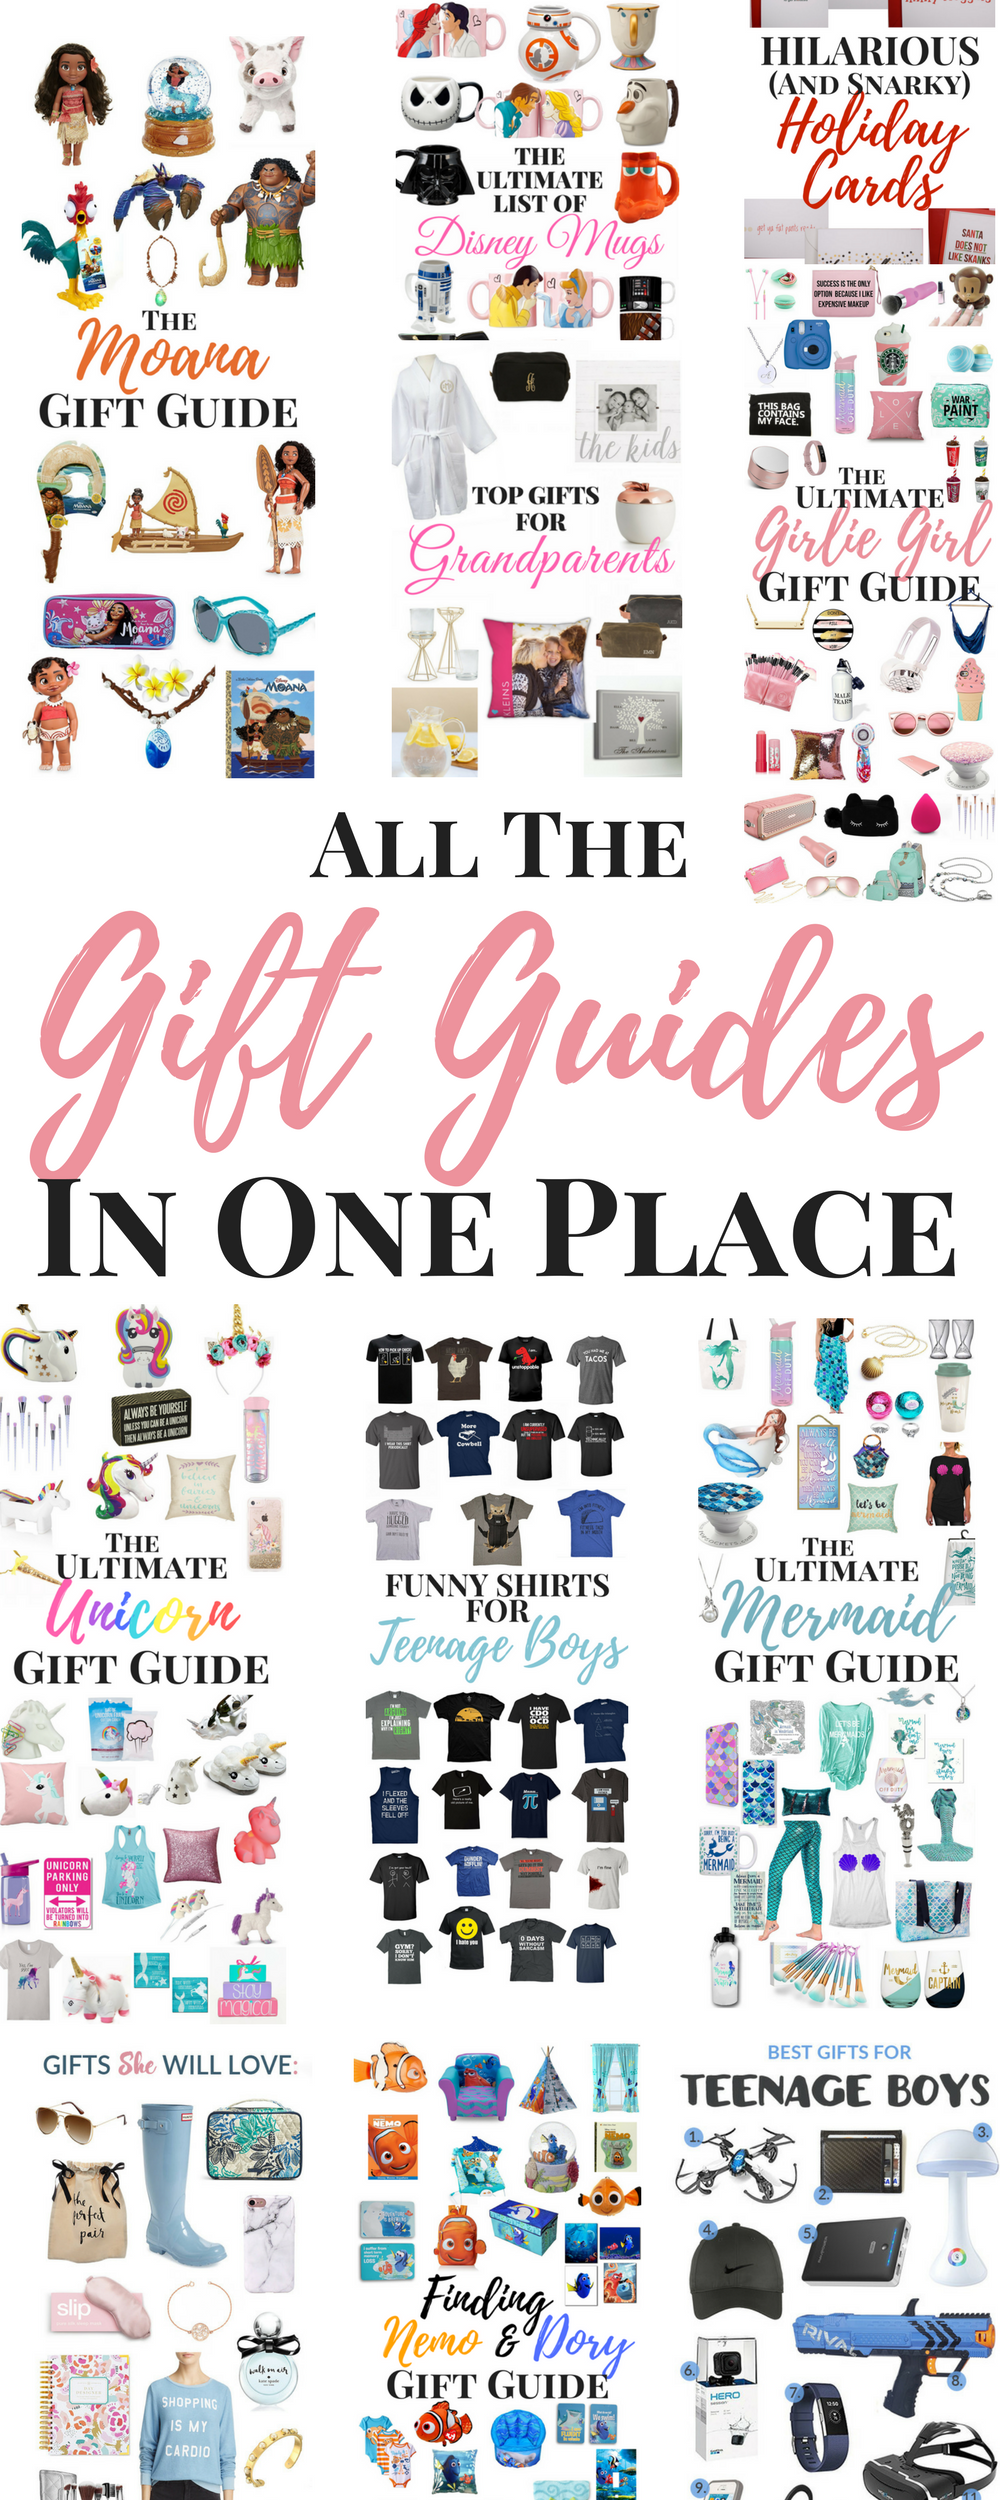 Gift Guides in one place